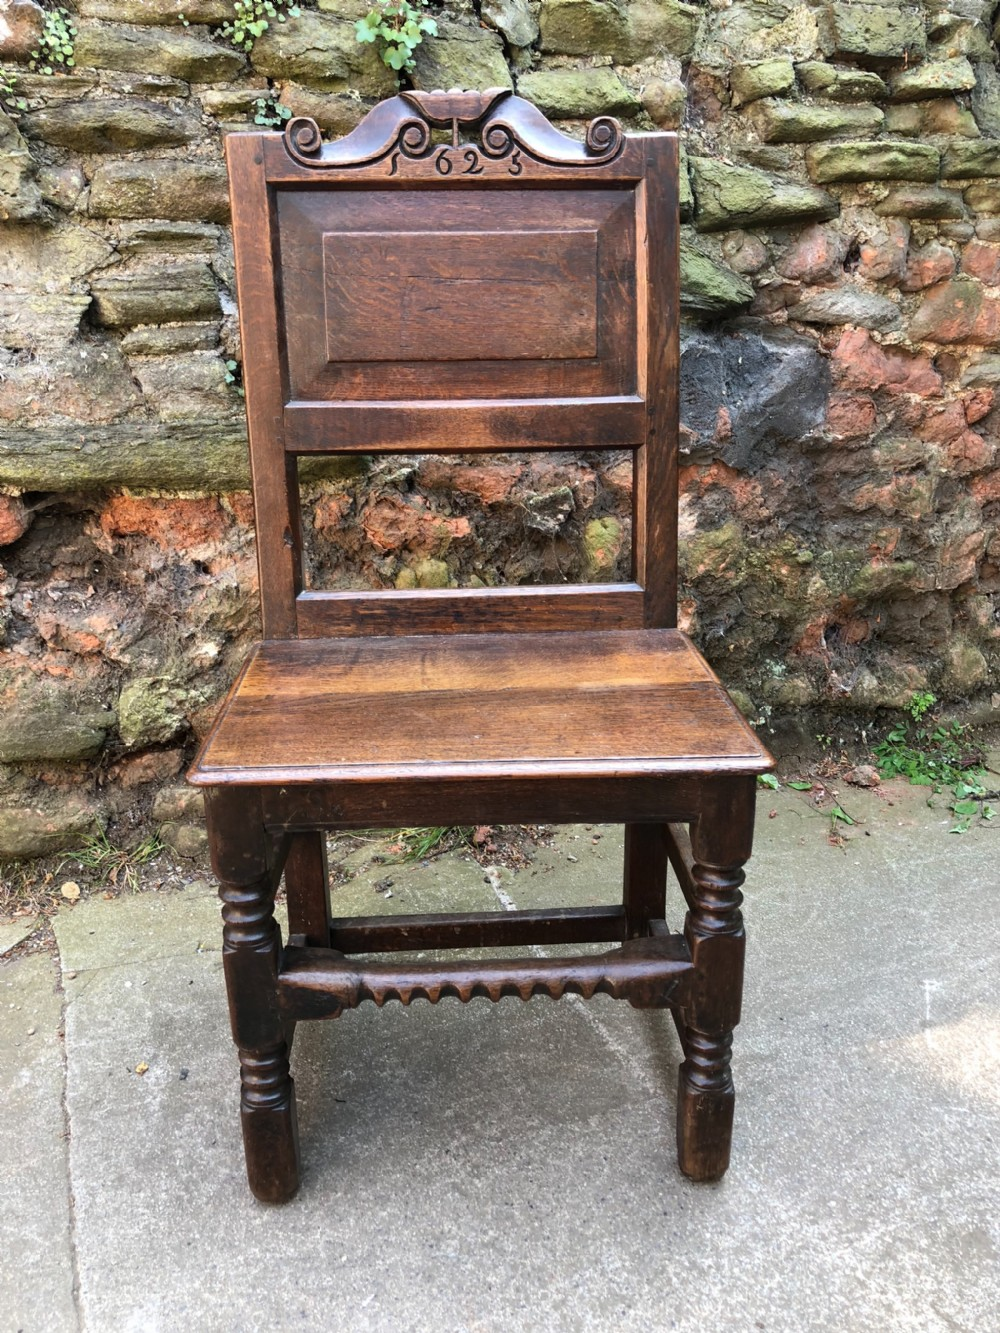 c17th oak chair with later date 1625